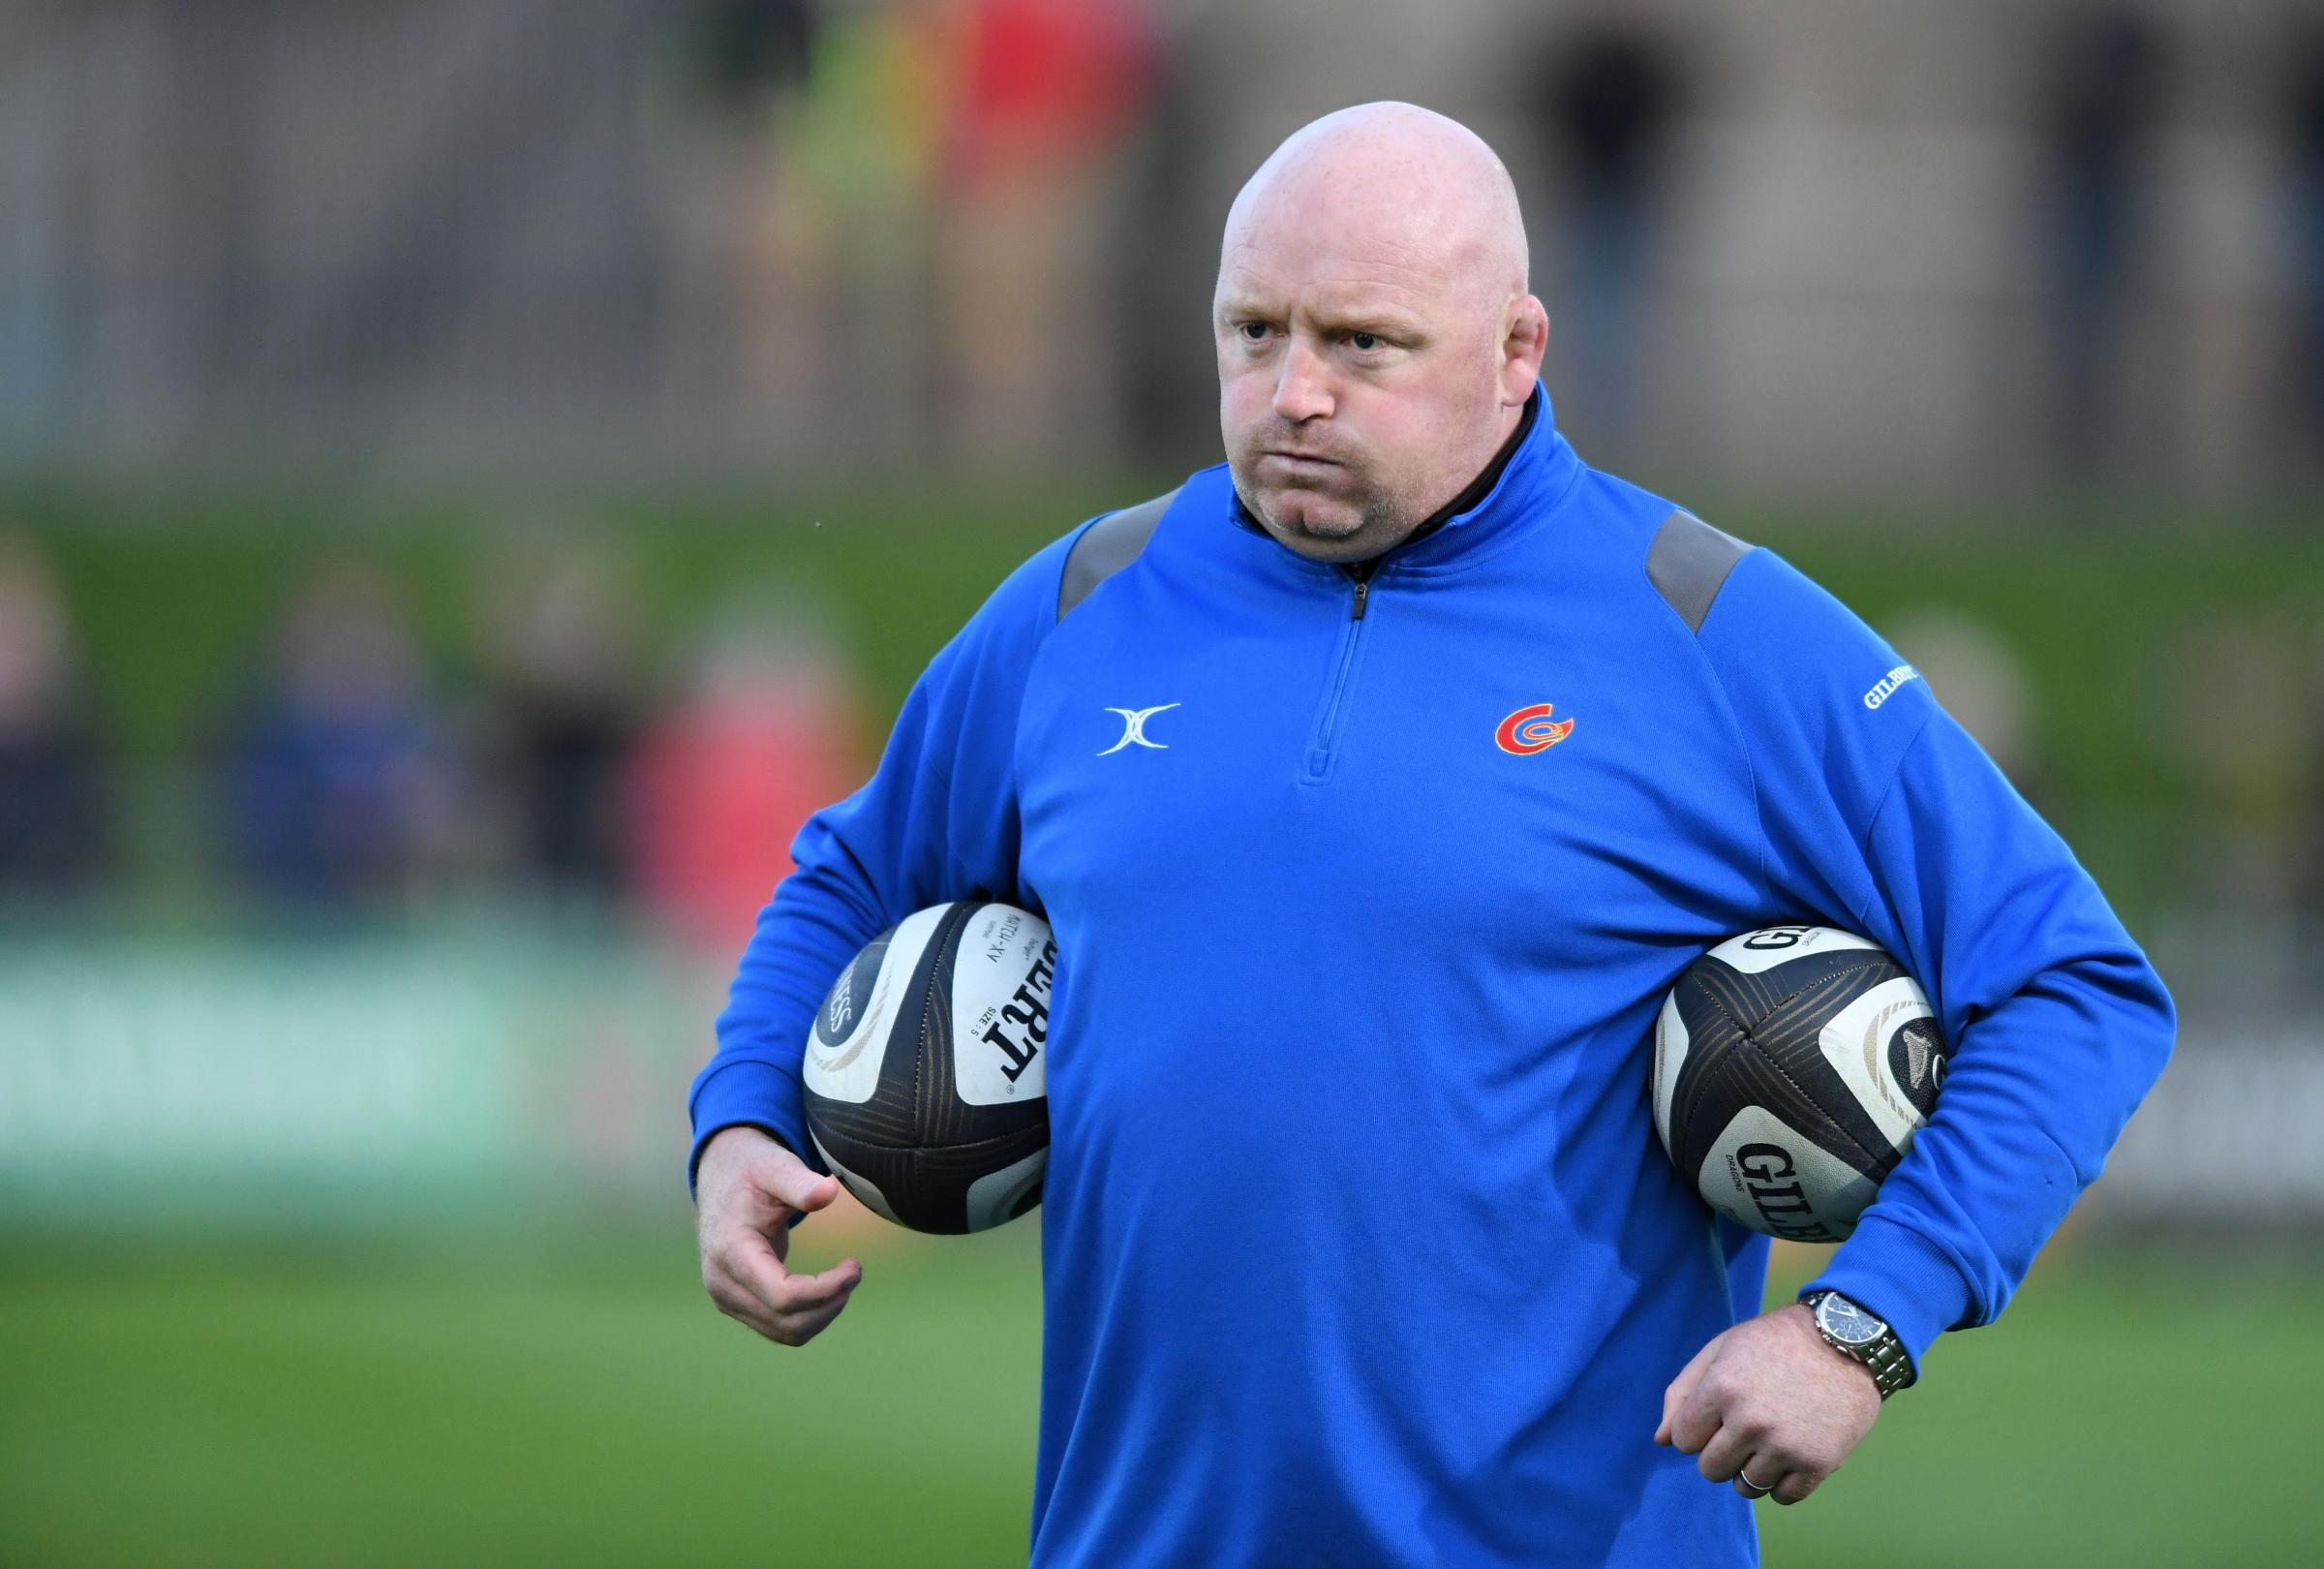 FRUSTRATED: Dragons head coach Bernard Jackman has told his fringe players to provide more bench impact